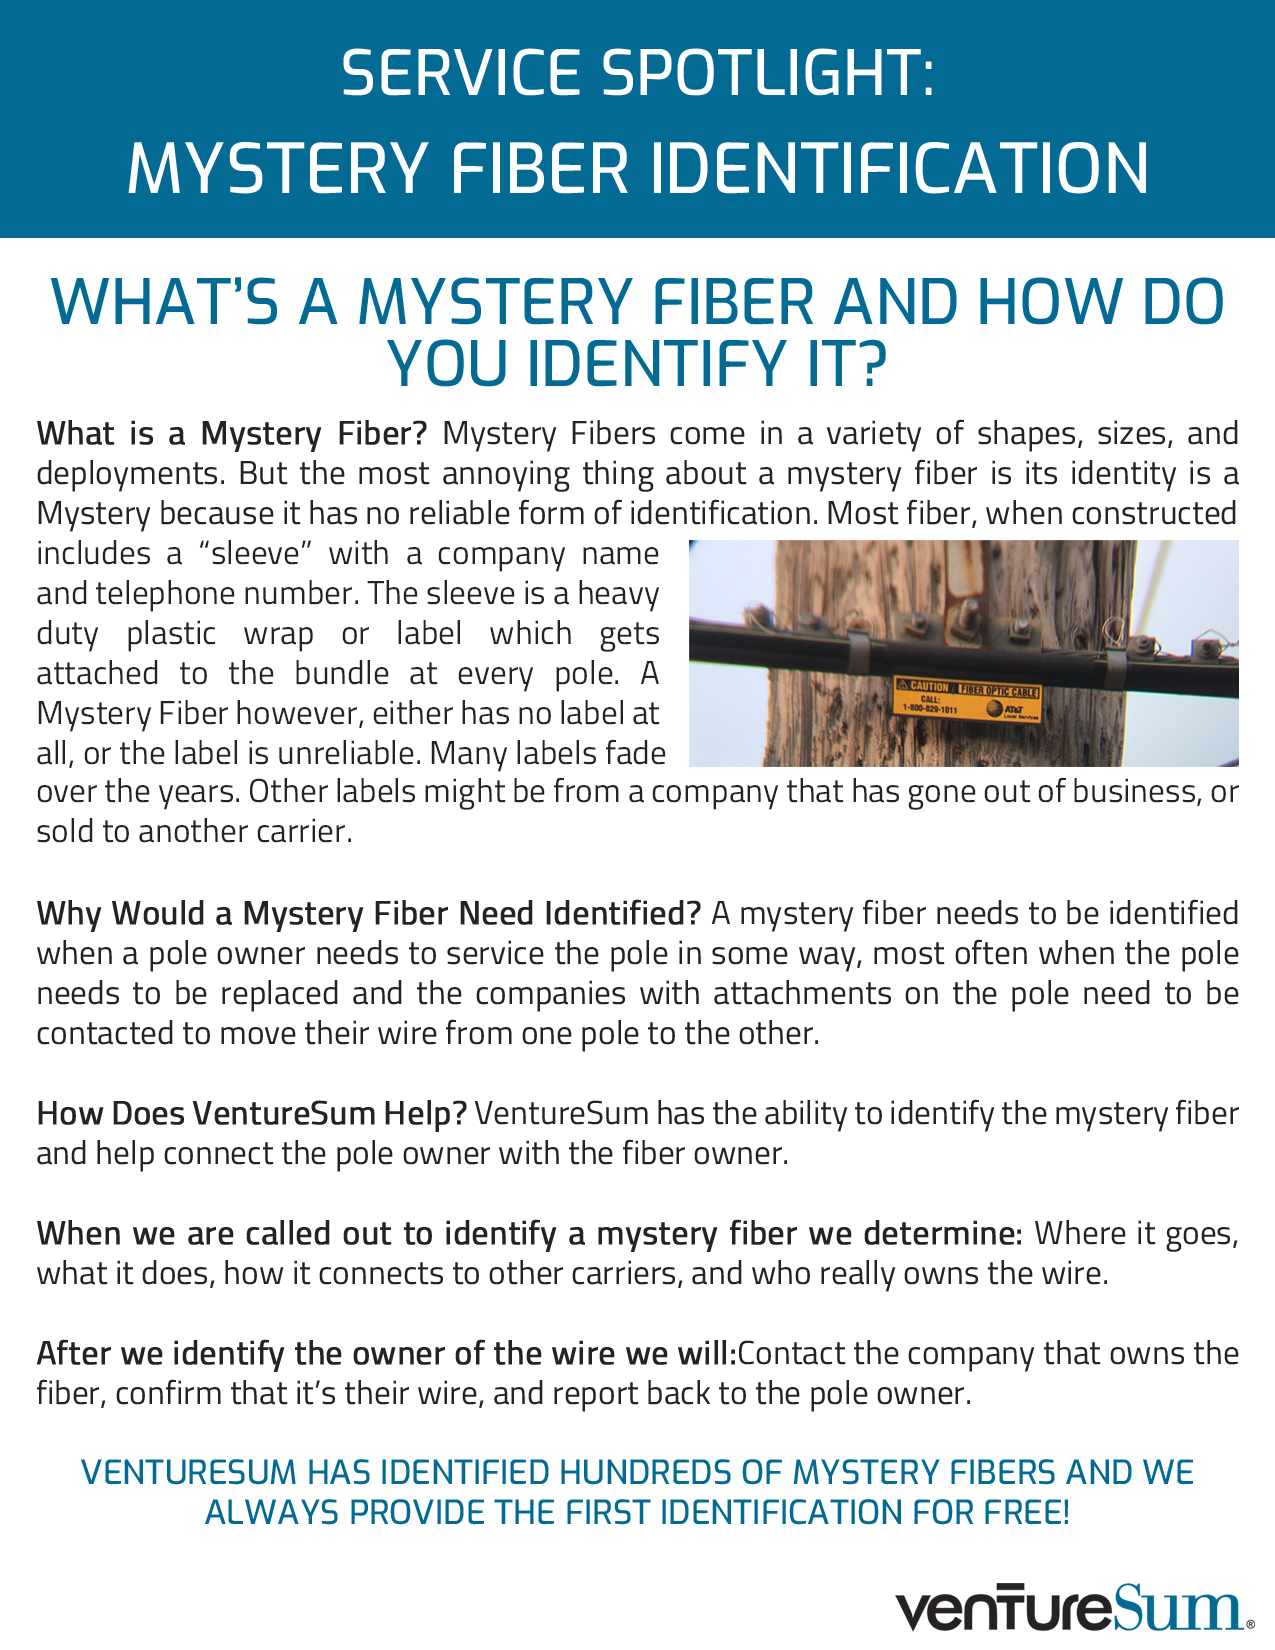 Service Spotlight: Mystery Fiber Identification – What's A Mystery Fiber And How Do You Identify It?